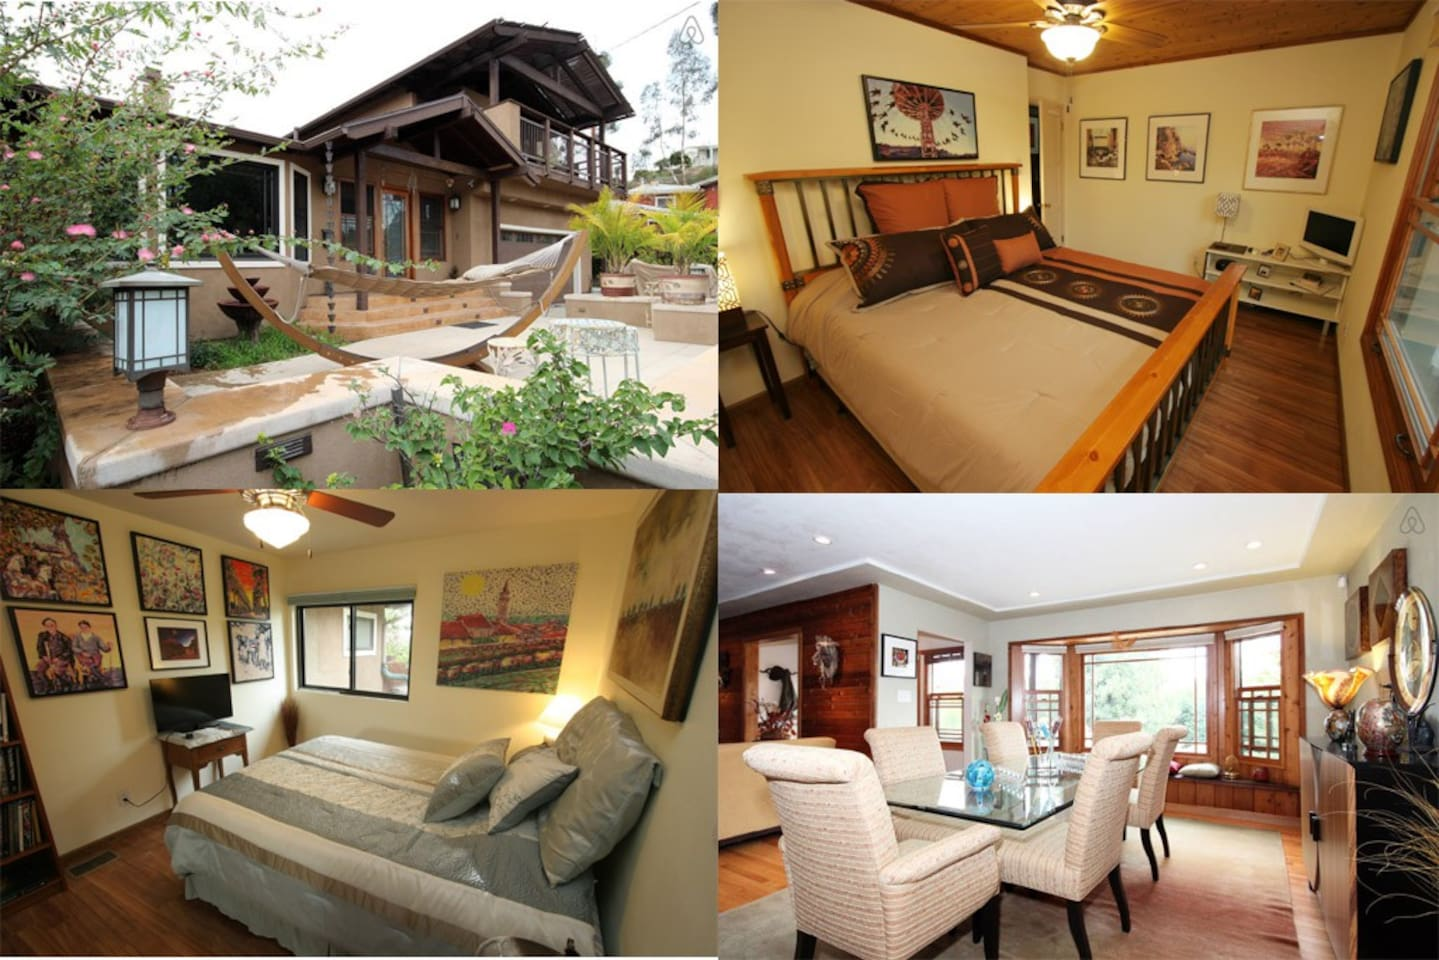 2 private bedrooms and 2 private bathrooms